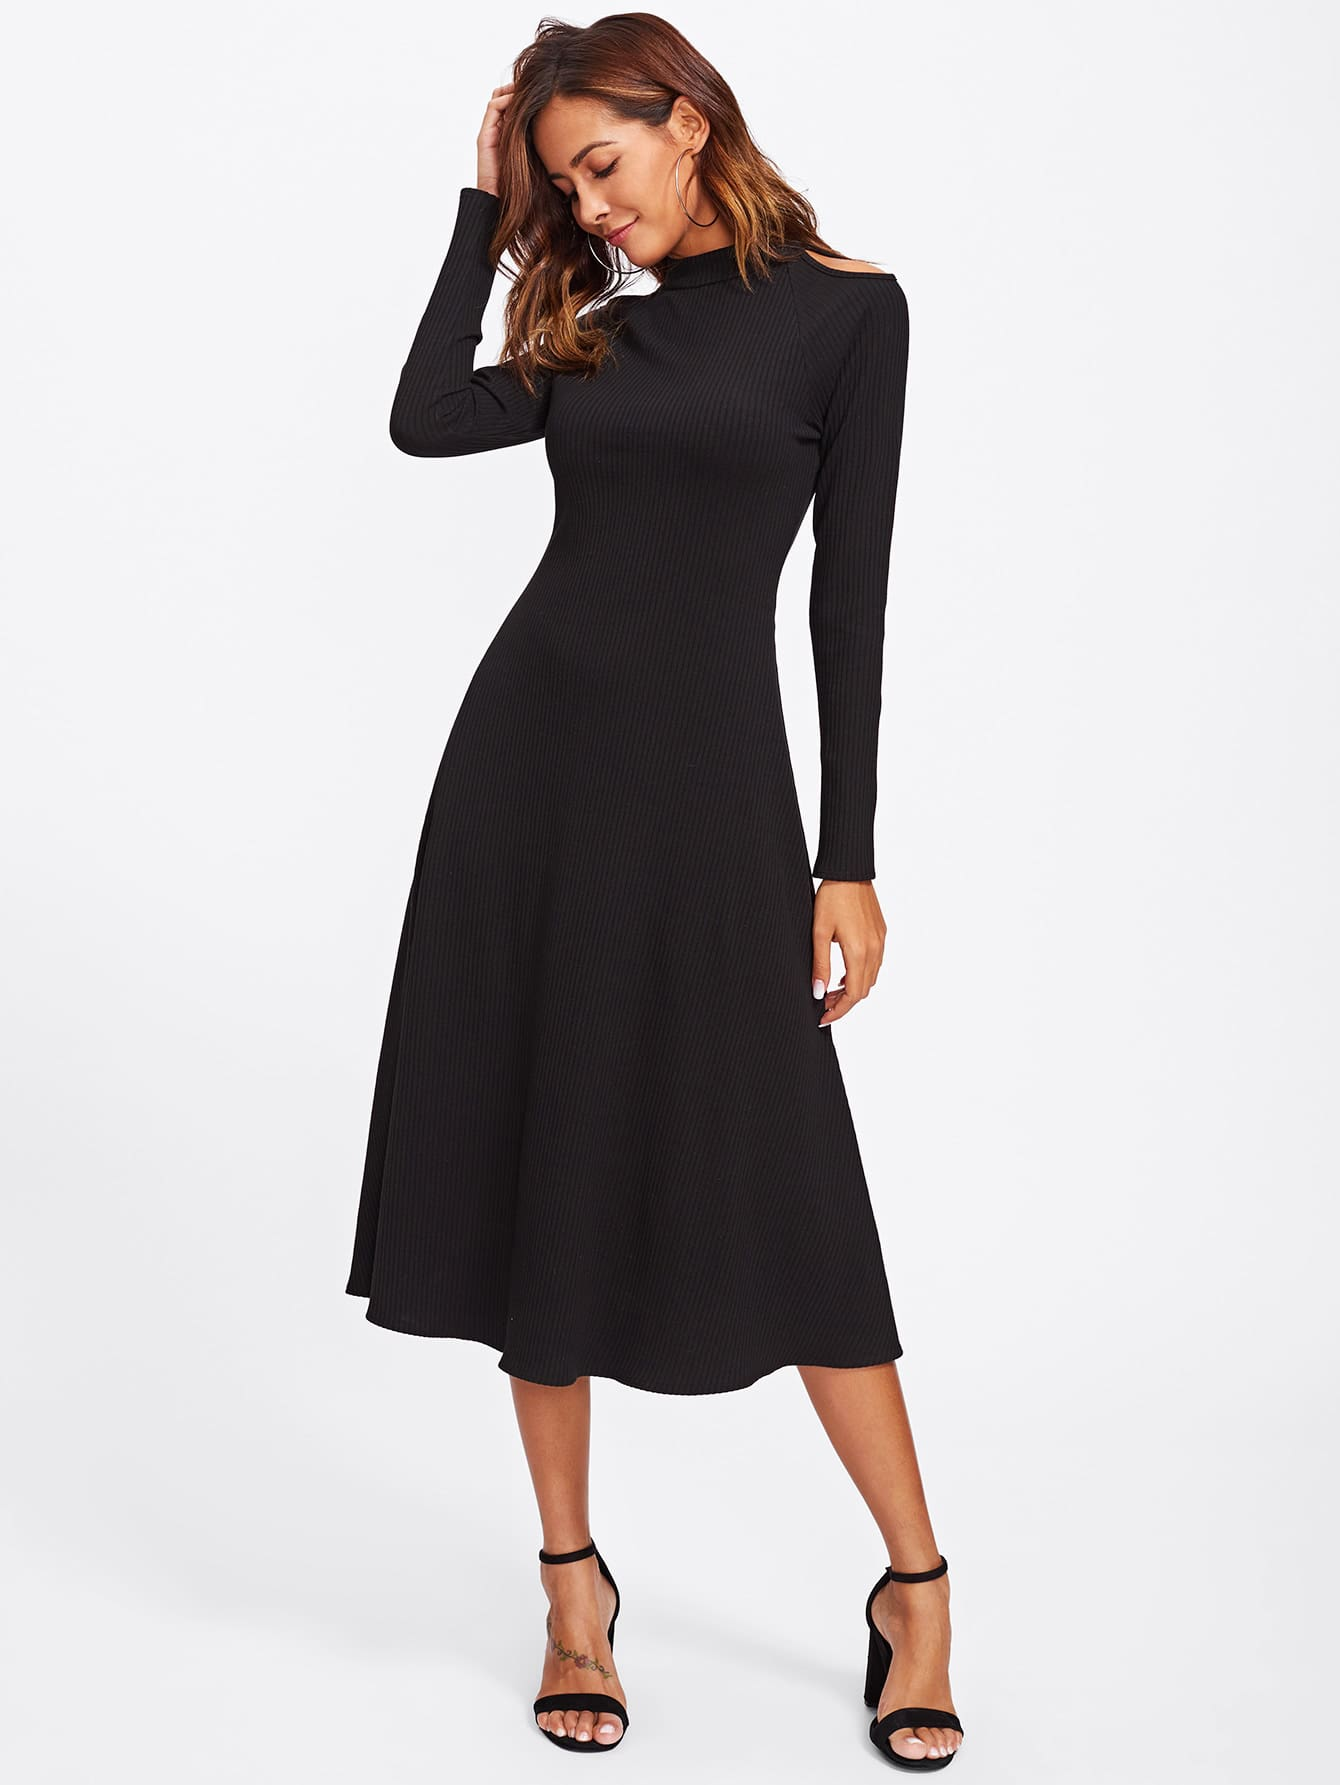 Cutout Shoulder Raglan Sleeve Ribbed Dress dress170830708